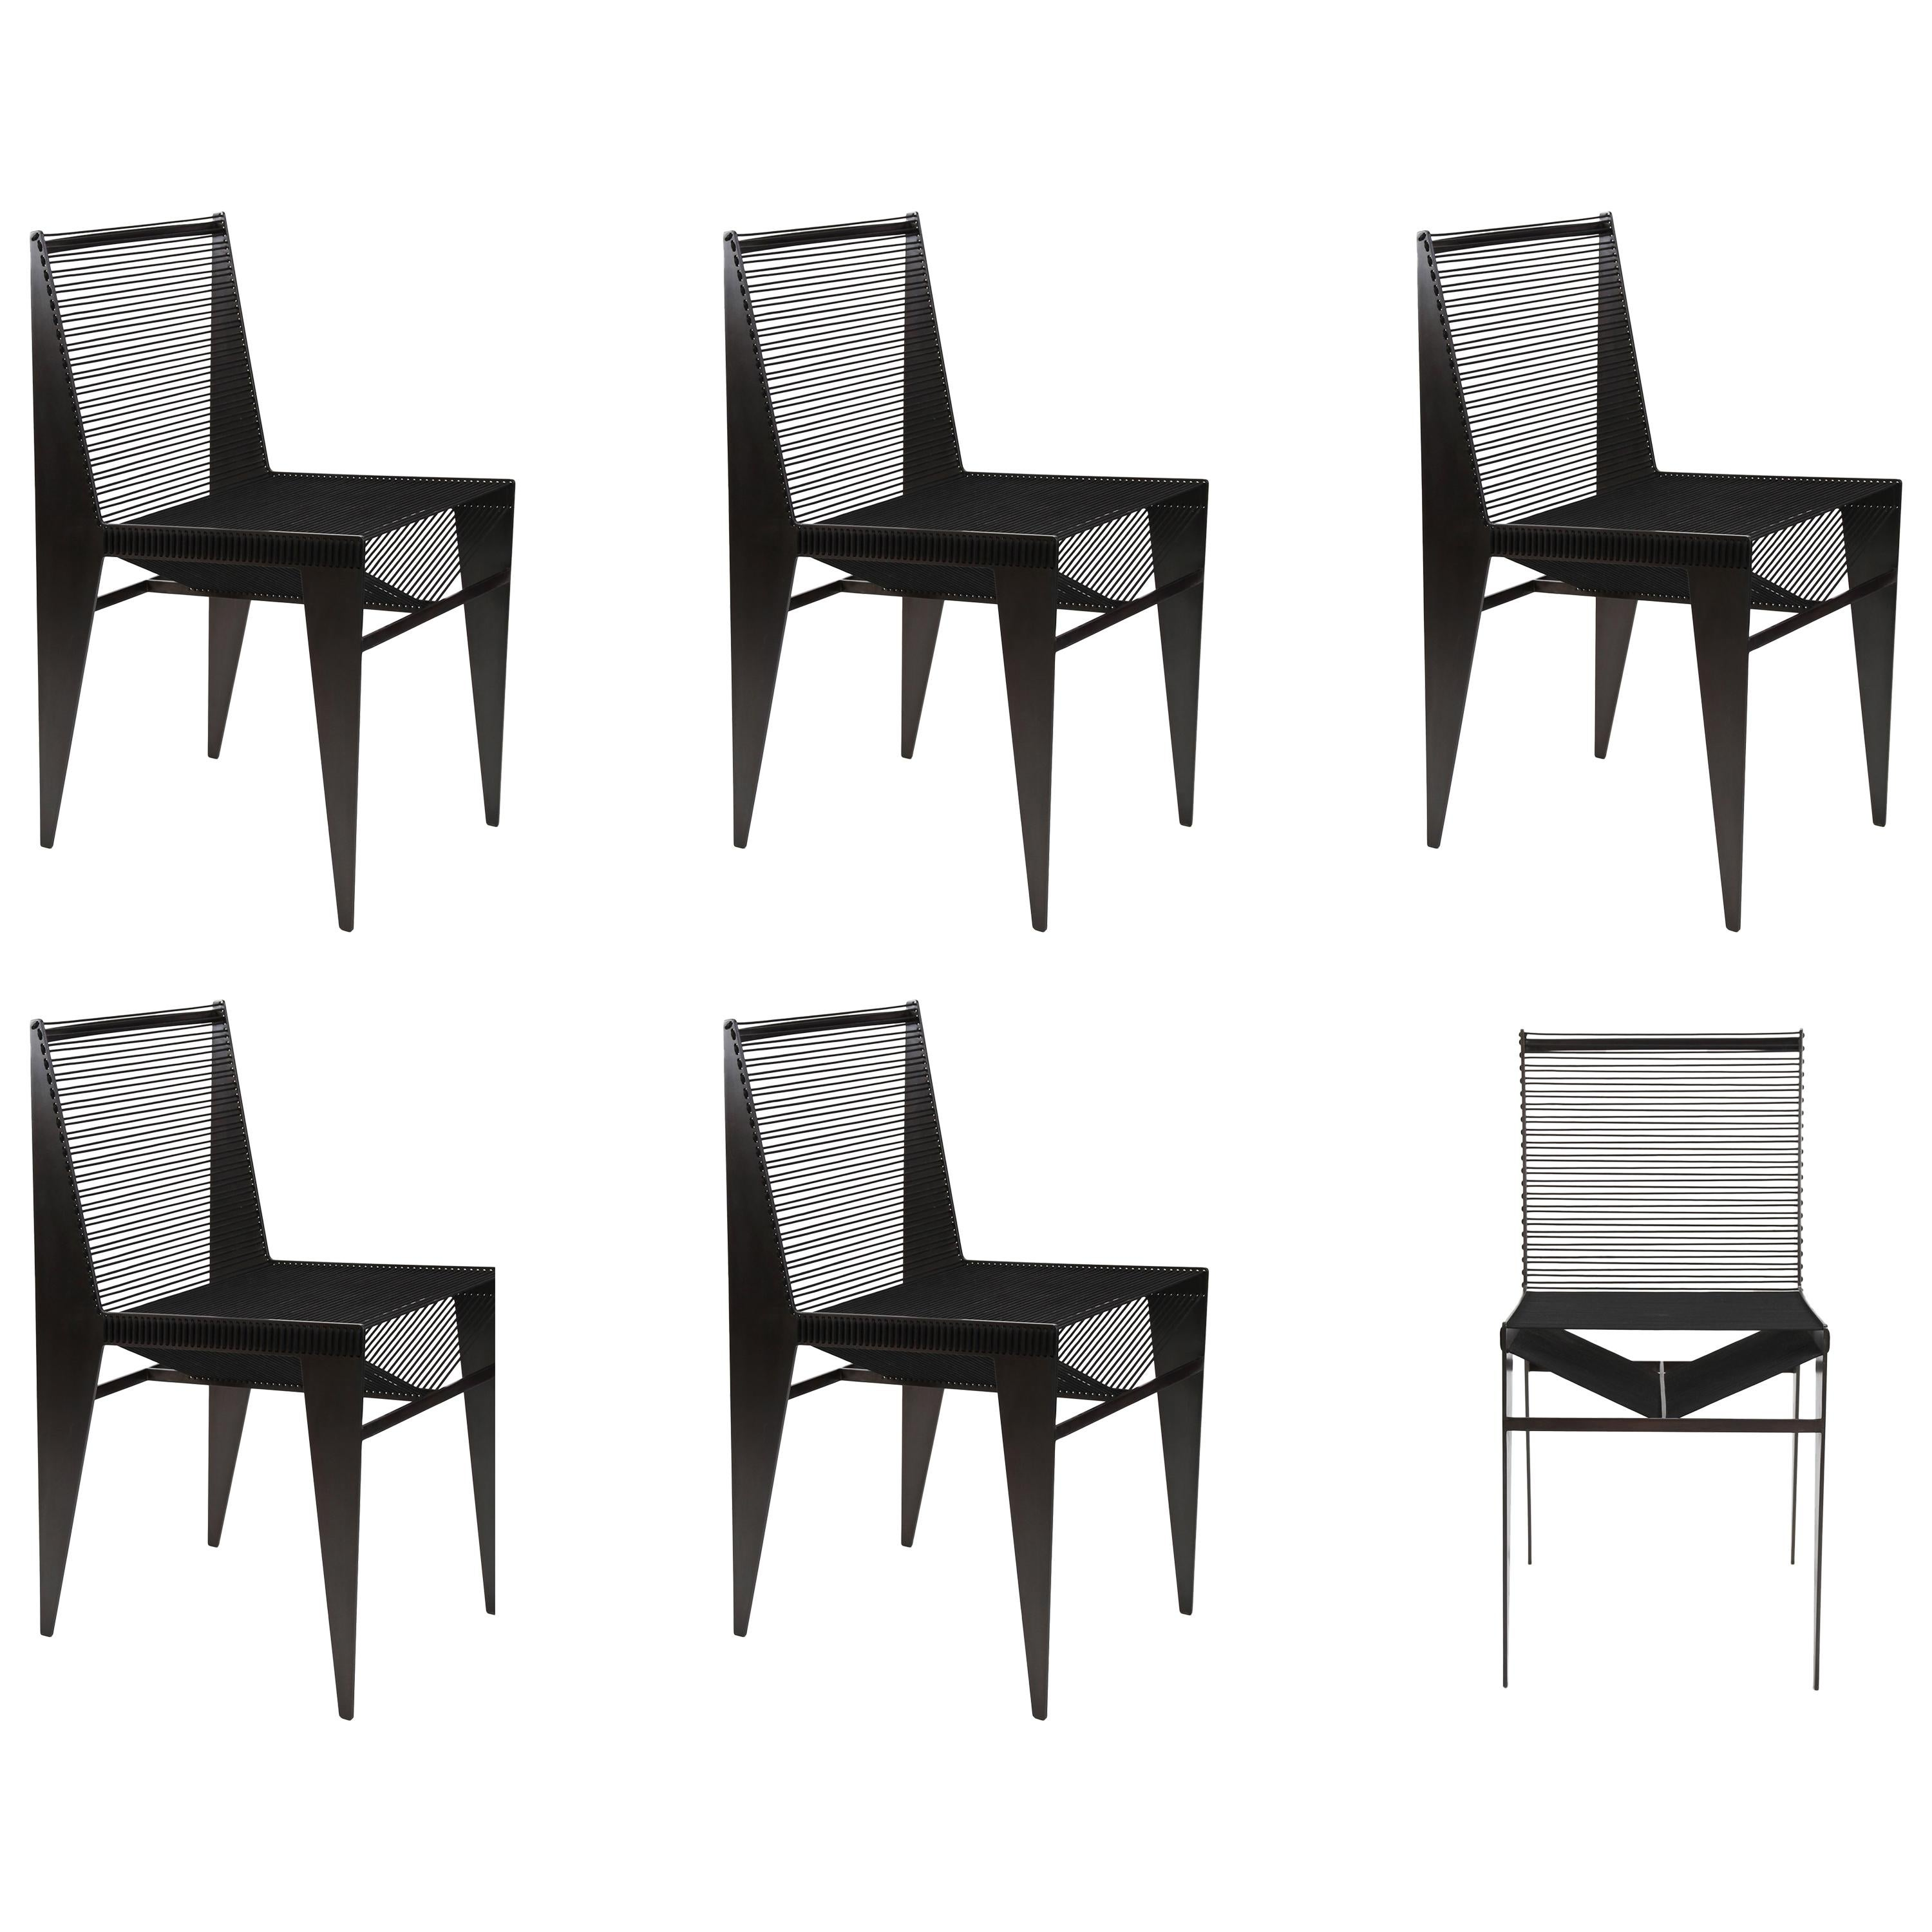 Set of 6 ICON Chairs in Steel and Rope by Christopher Kreiling Studio